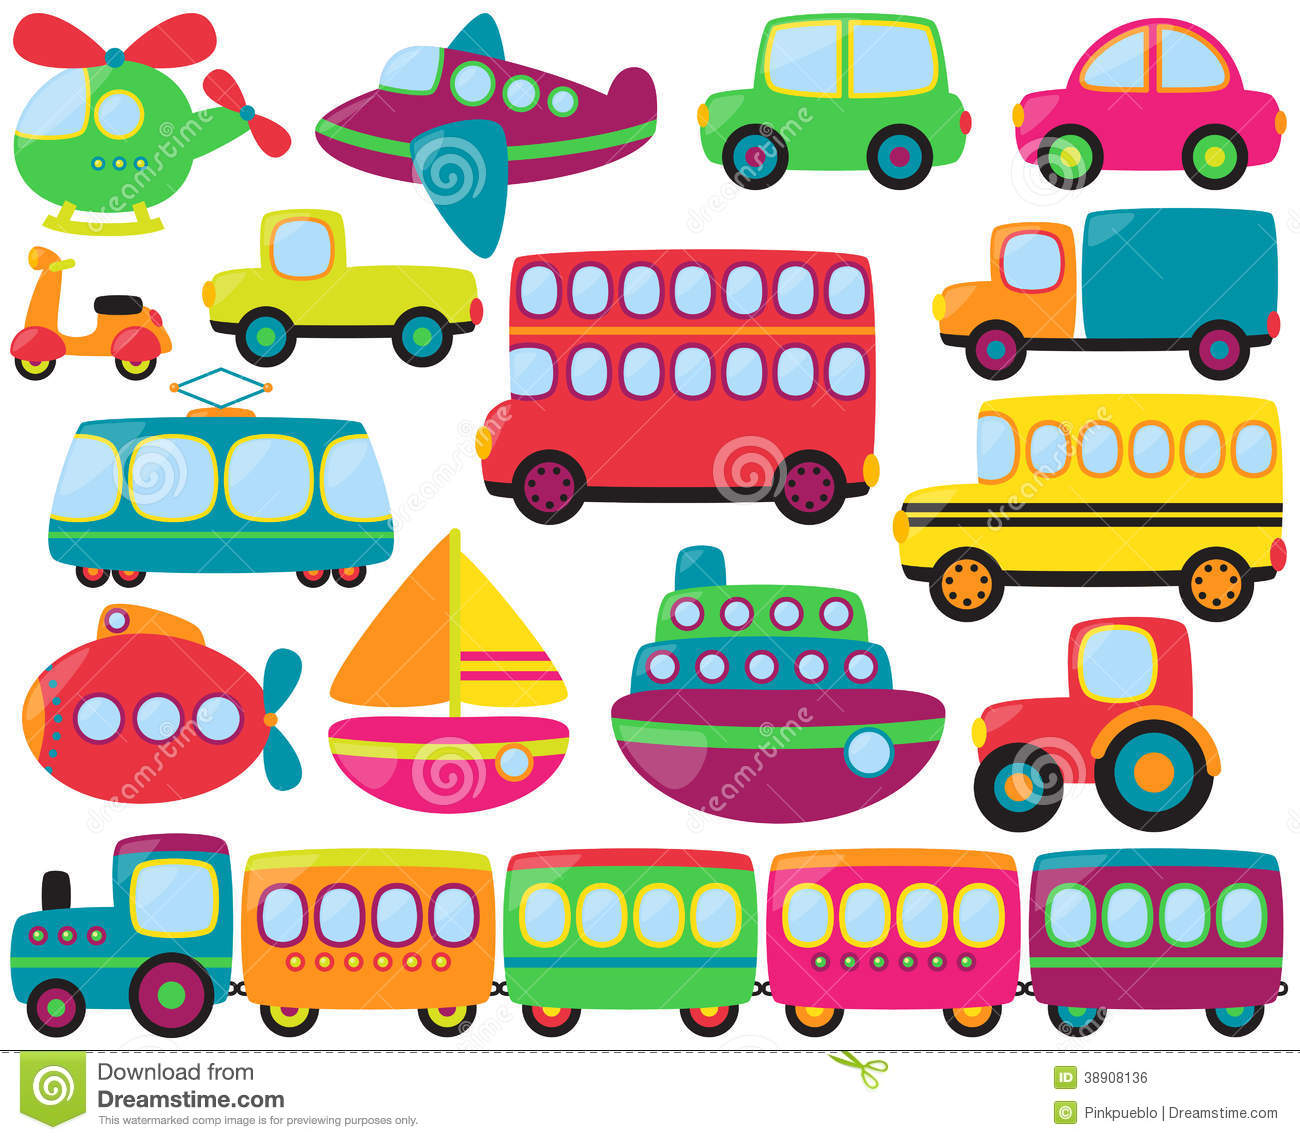 toy plane clip art with Royalty Free Stock Image Large Vector Set Cute Transportation Vehicles Equipment Image38908136 on Royalty Free Stock Image Large Vector Set Cute Transportation Vehicles Equipment Image38908136 as well Royalty Free Stock Photography Aircraft Banner Image26415907 besides Clipart Paper Airplane besides Fireworks Clipart Transparent furthermore Airplane Clipart.